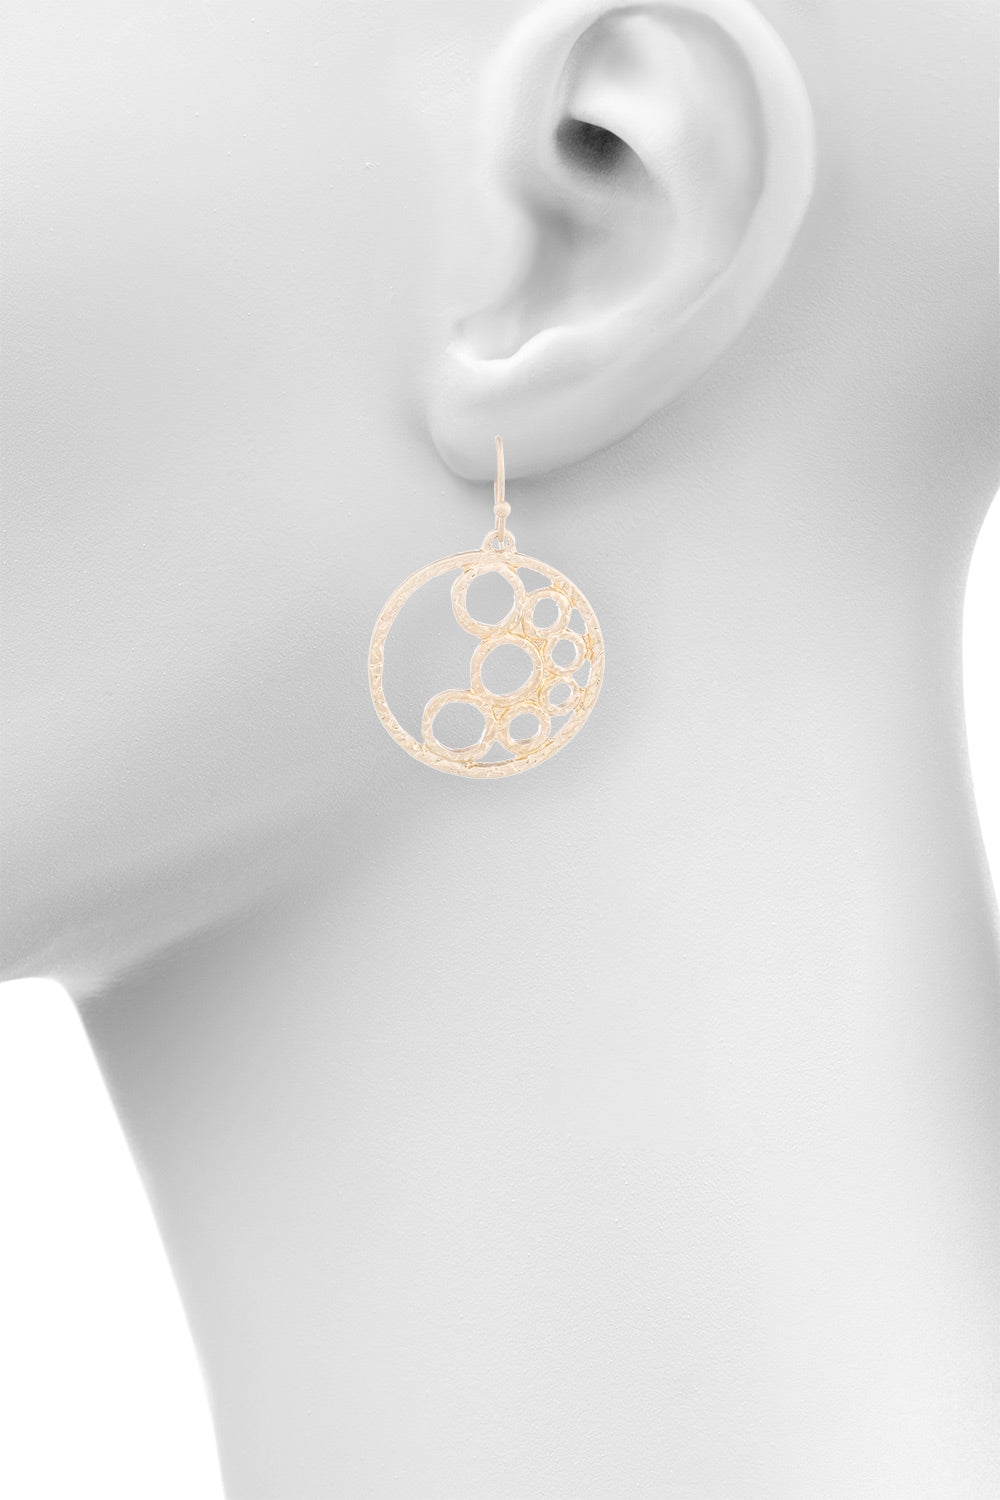 Type 1 Warmth Within Earrings